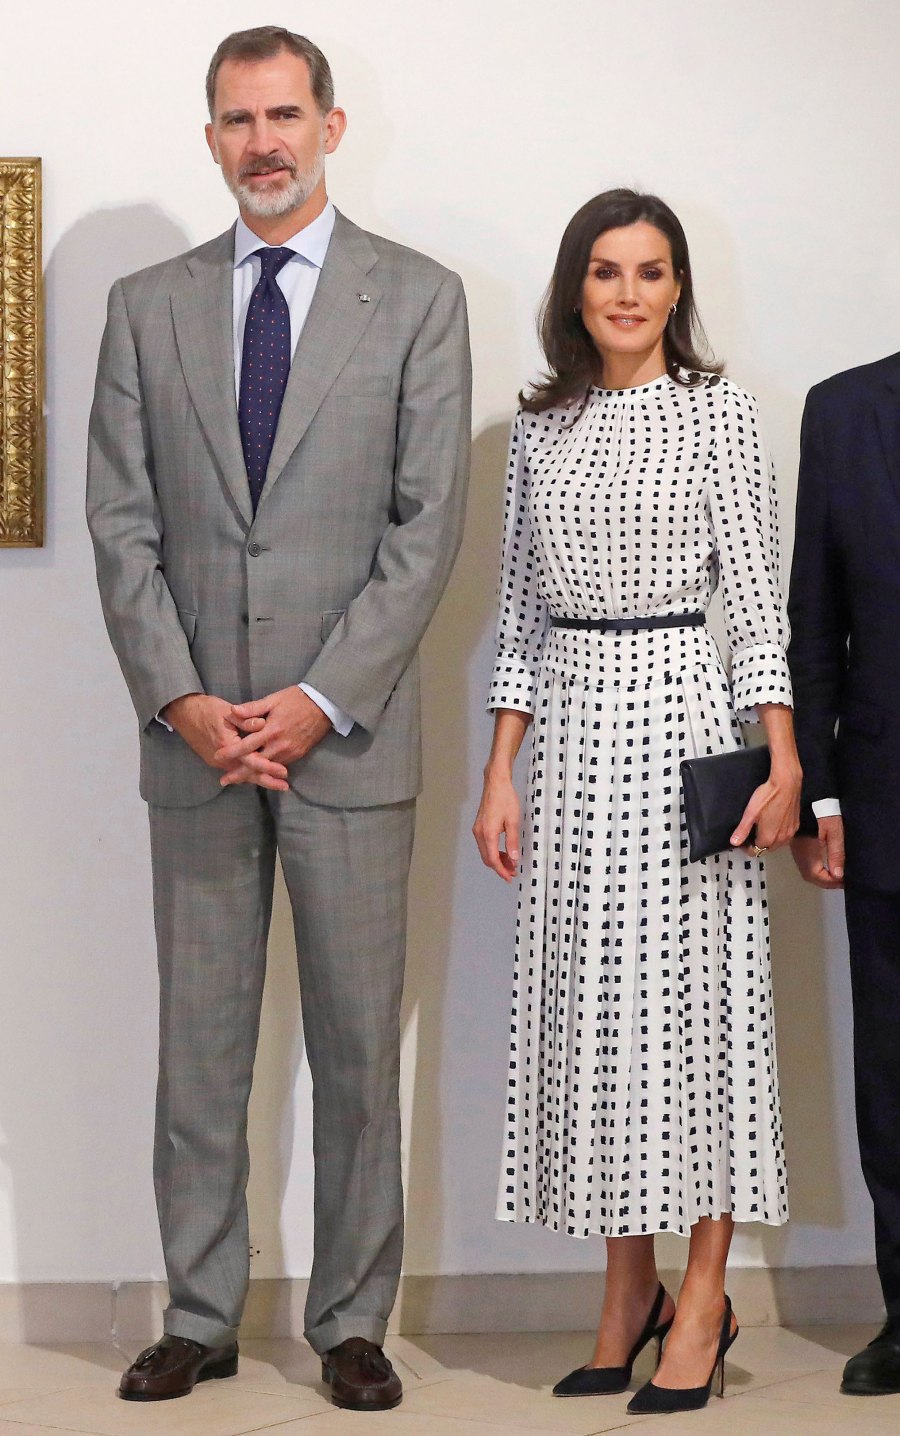 Queen Letizia Dotted Dress November 14, 2019